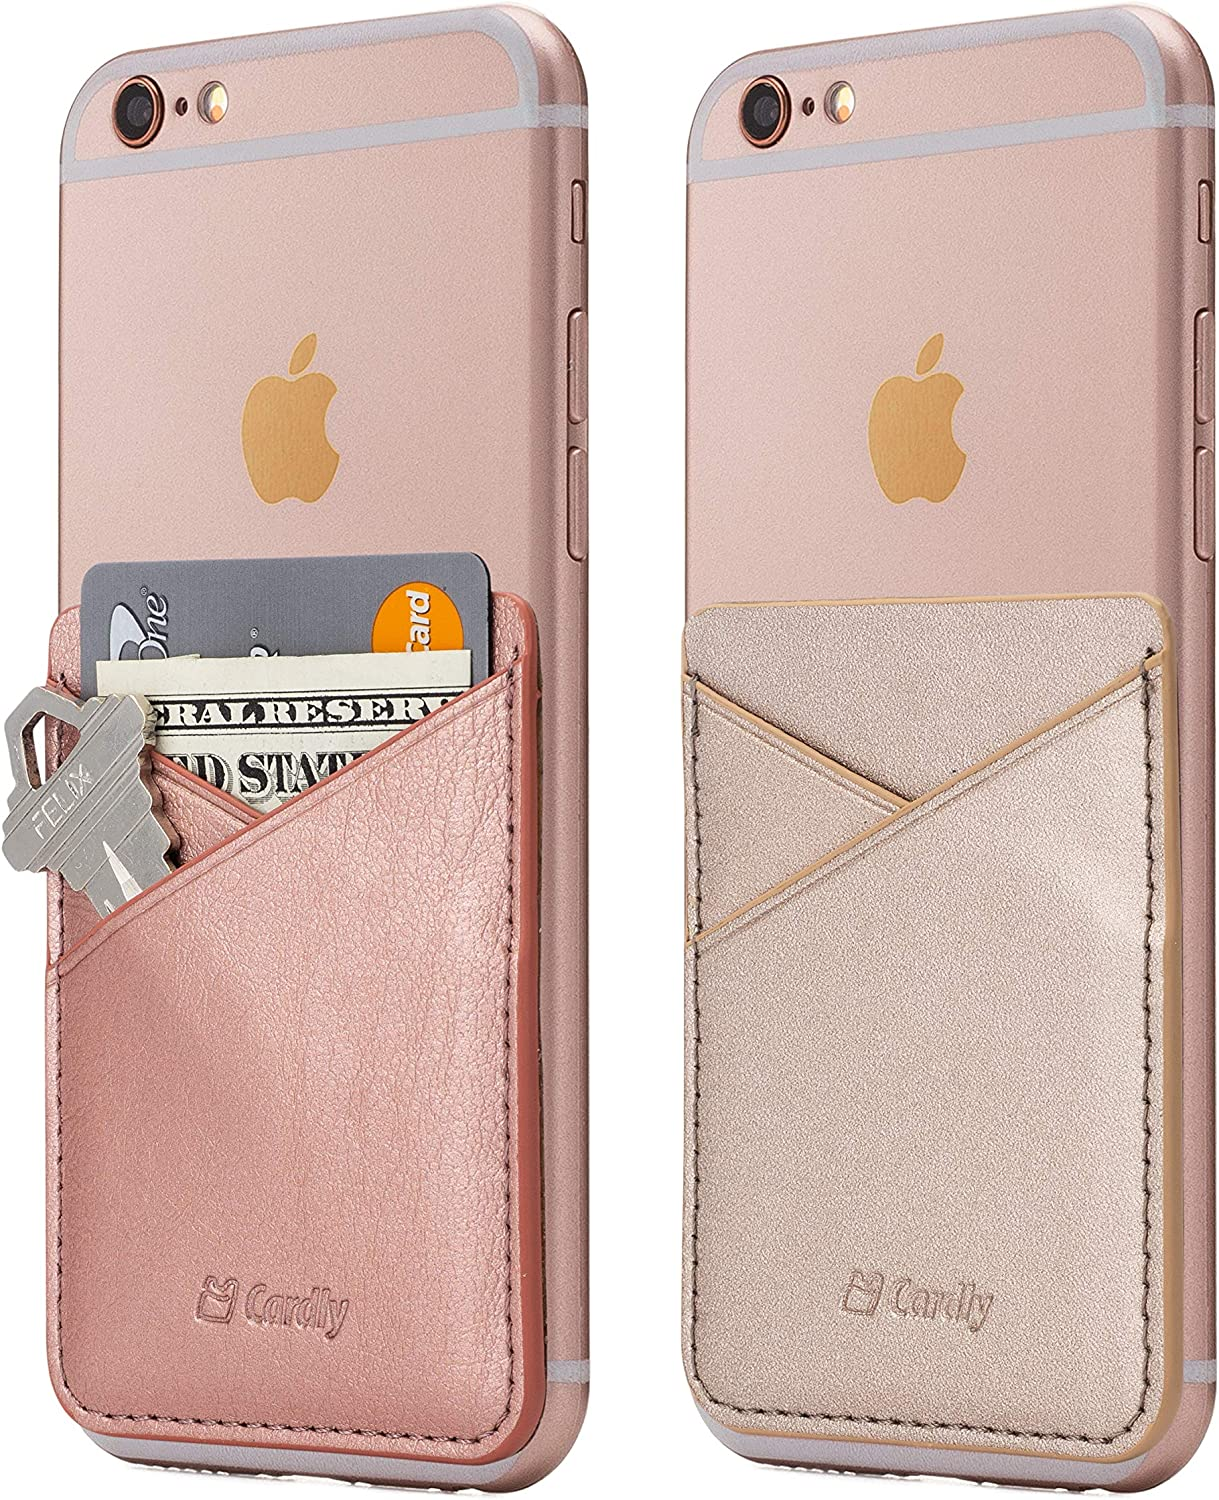 (Two) Cell Phone Stick On Wallet Card Holder Phone Pocket for iPhone, Android and All Smartphones. (Rose Gold)